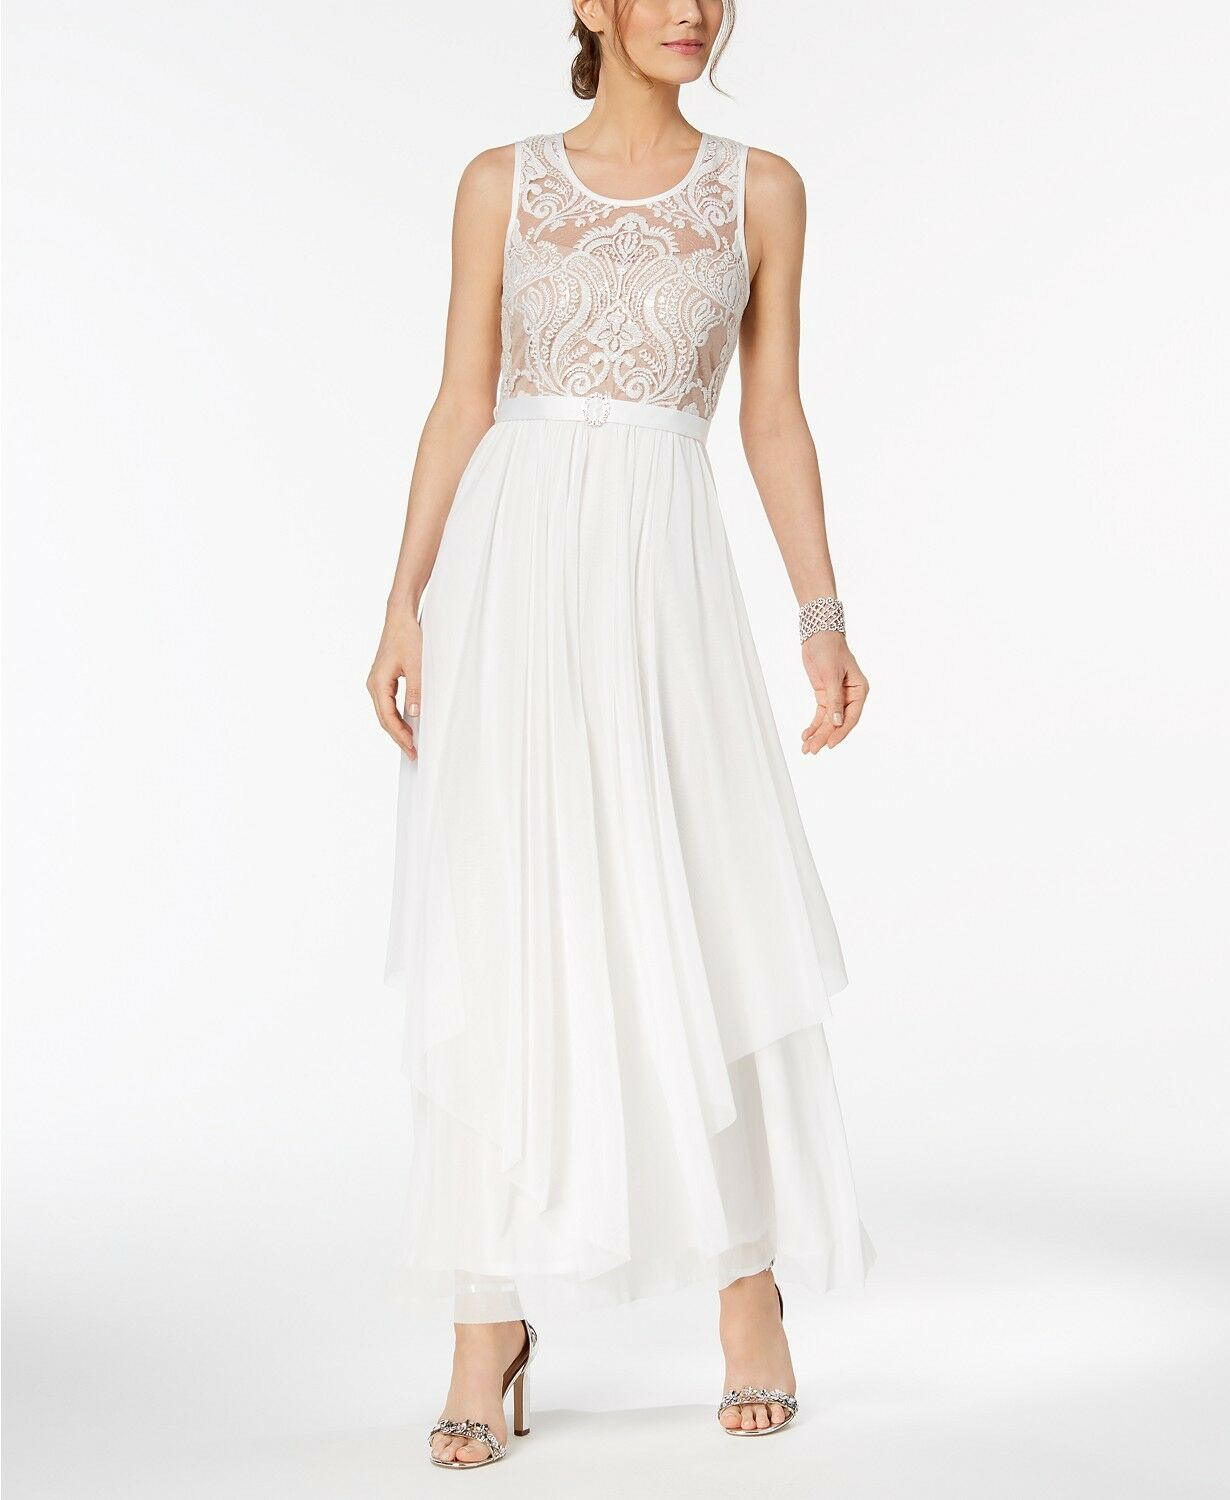 450 R&M RICHARDS WOMEN WHITE SEQUIN EMBROIDERED MESH BELTED GOWN DRESS SIZE 12